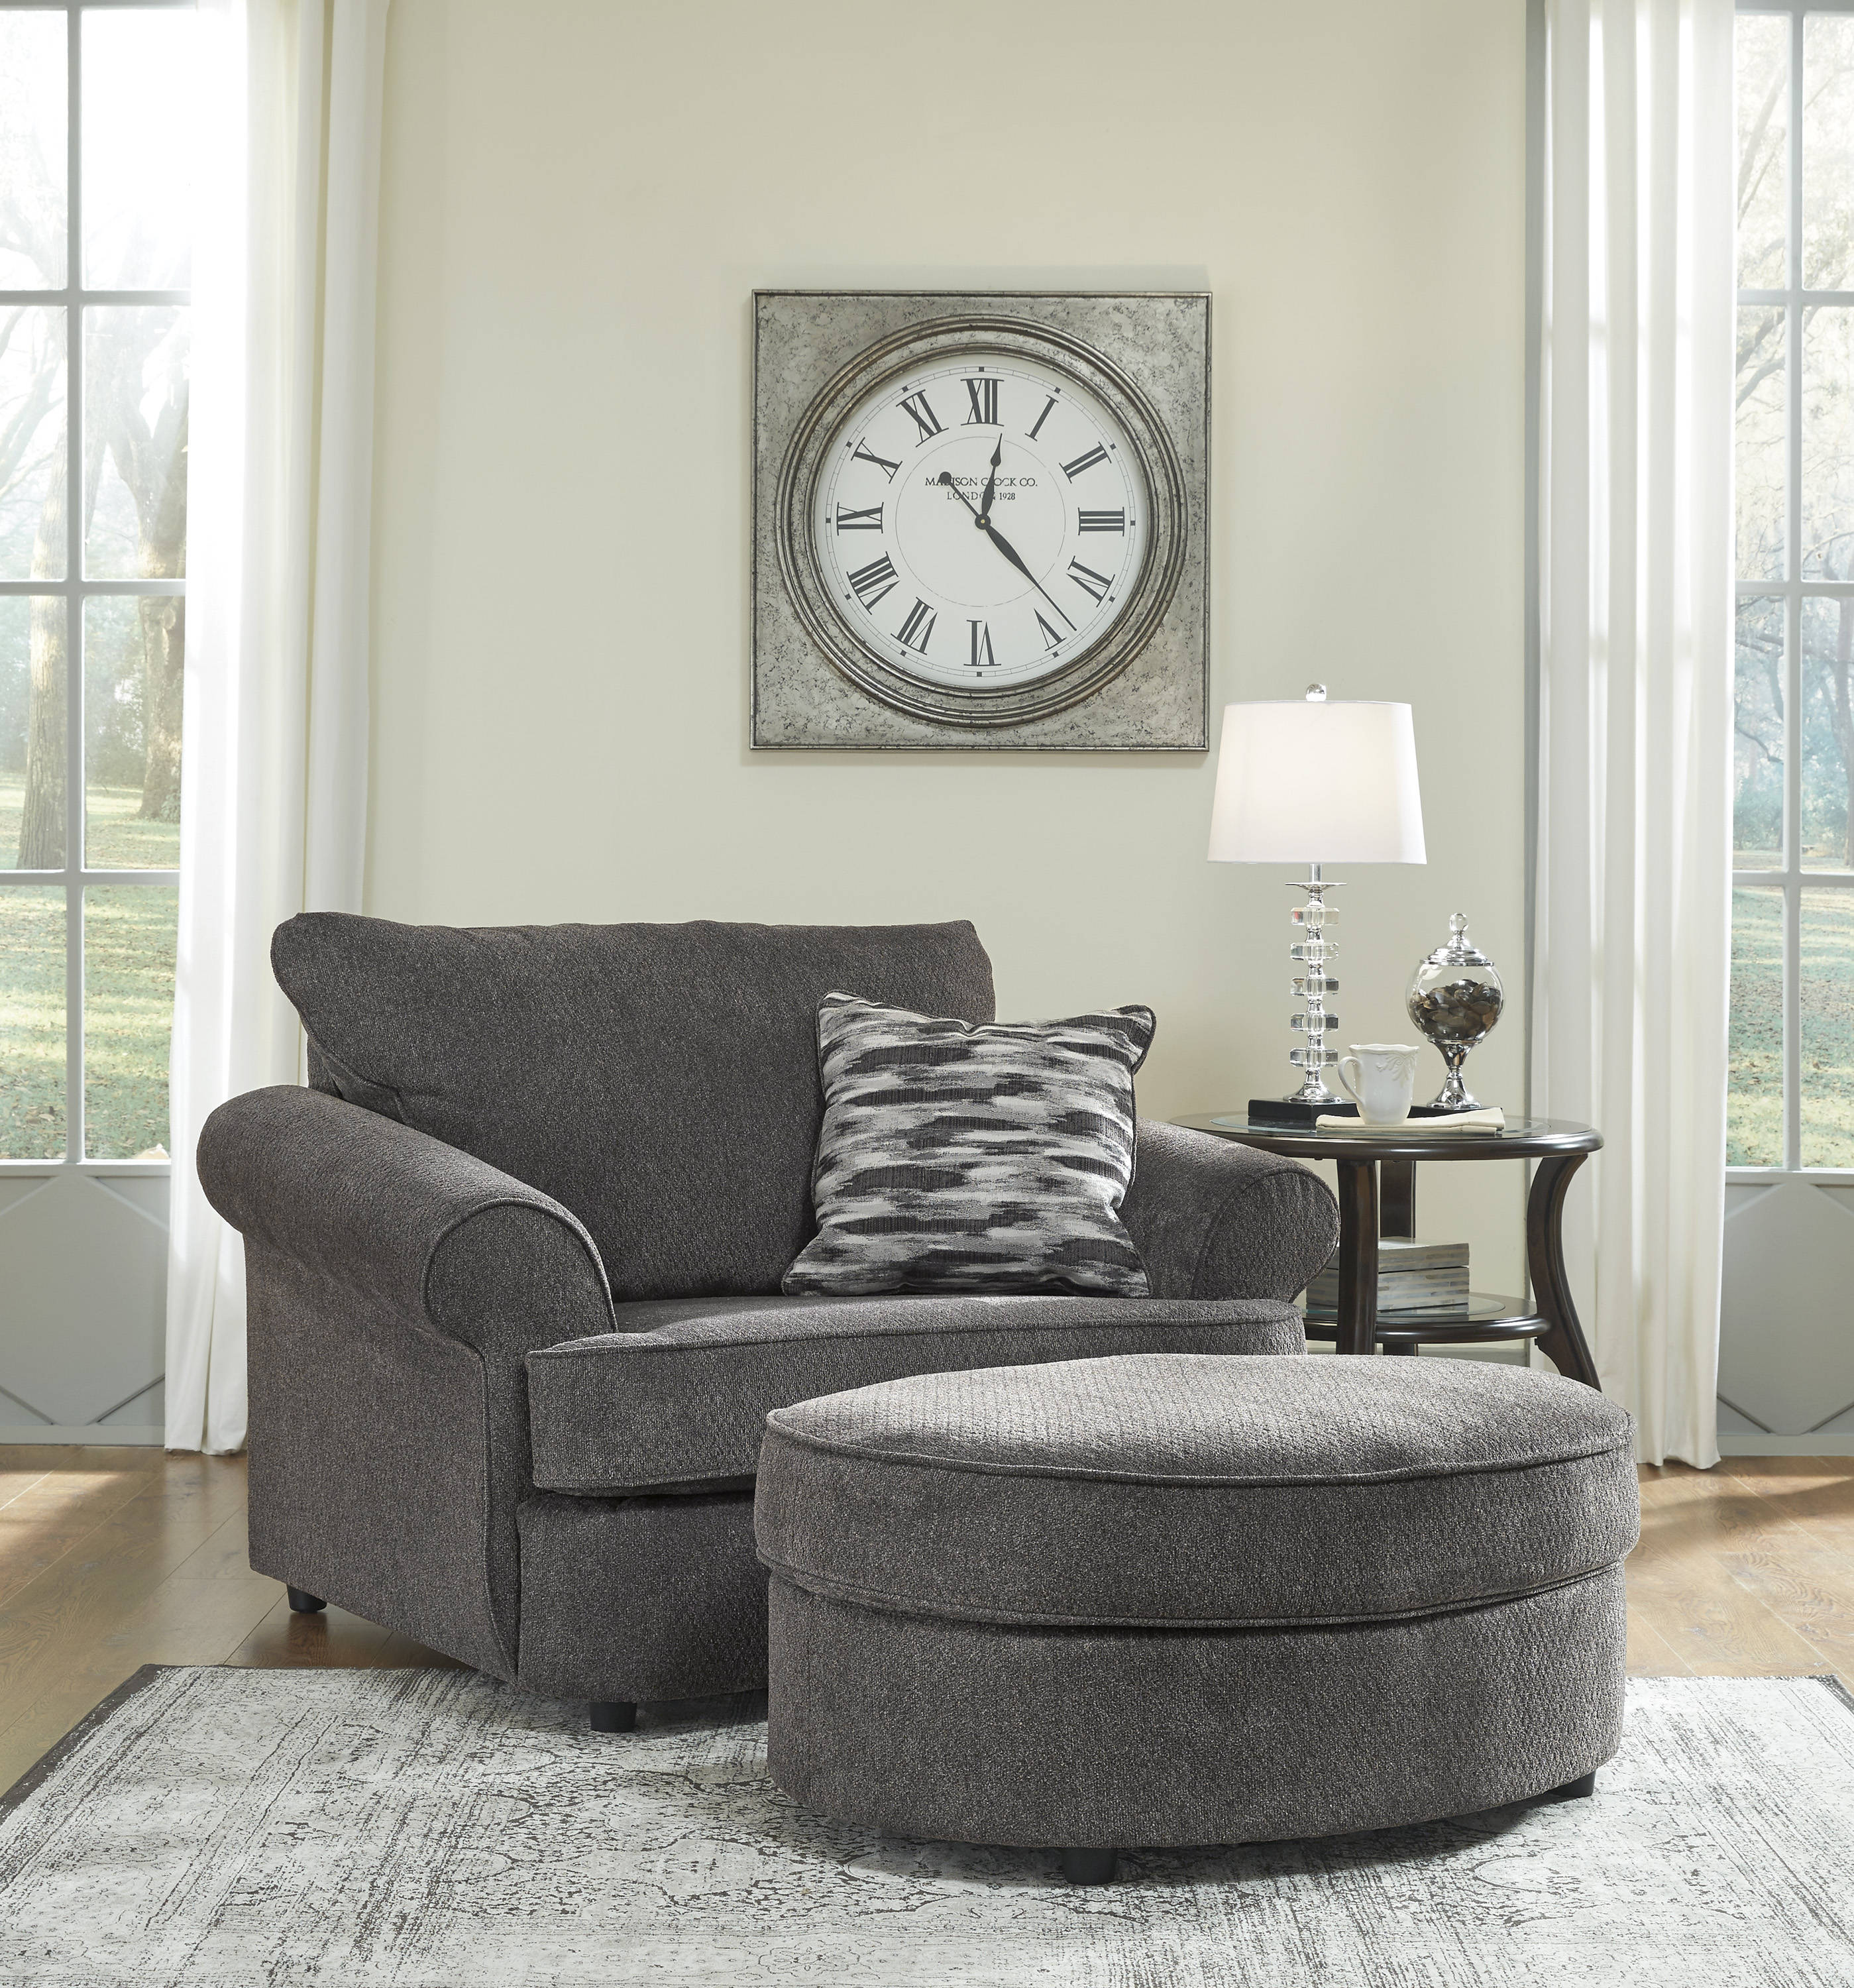 Sales At Ashley Furniture: Ashley Furniture Allouette Chair And Ottomans Set